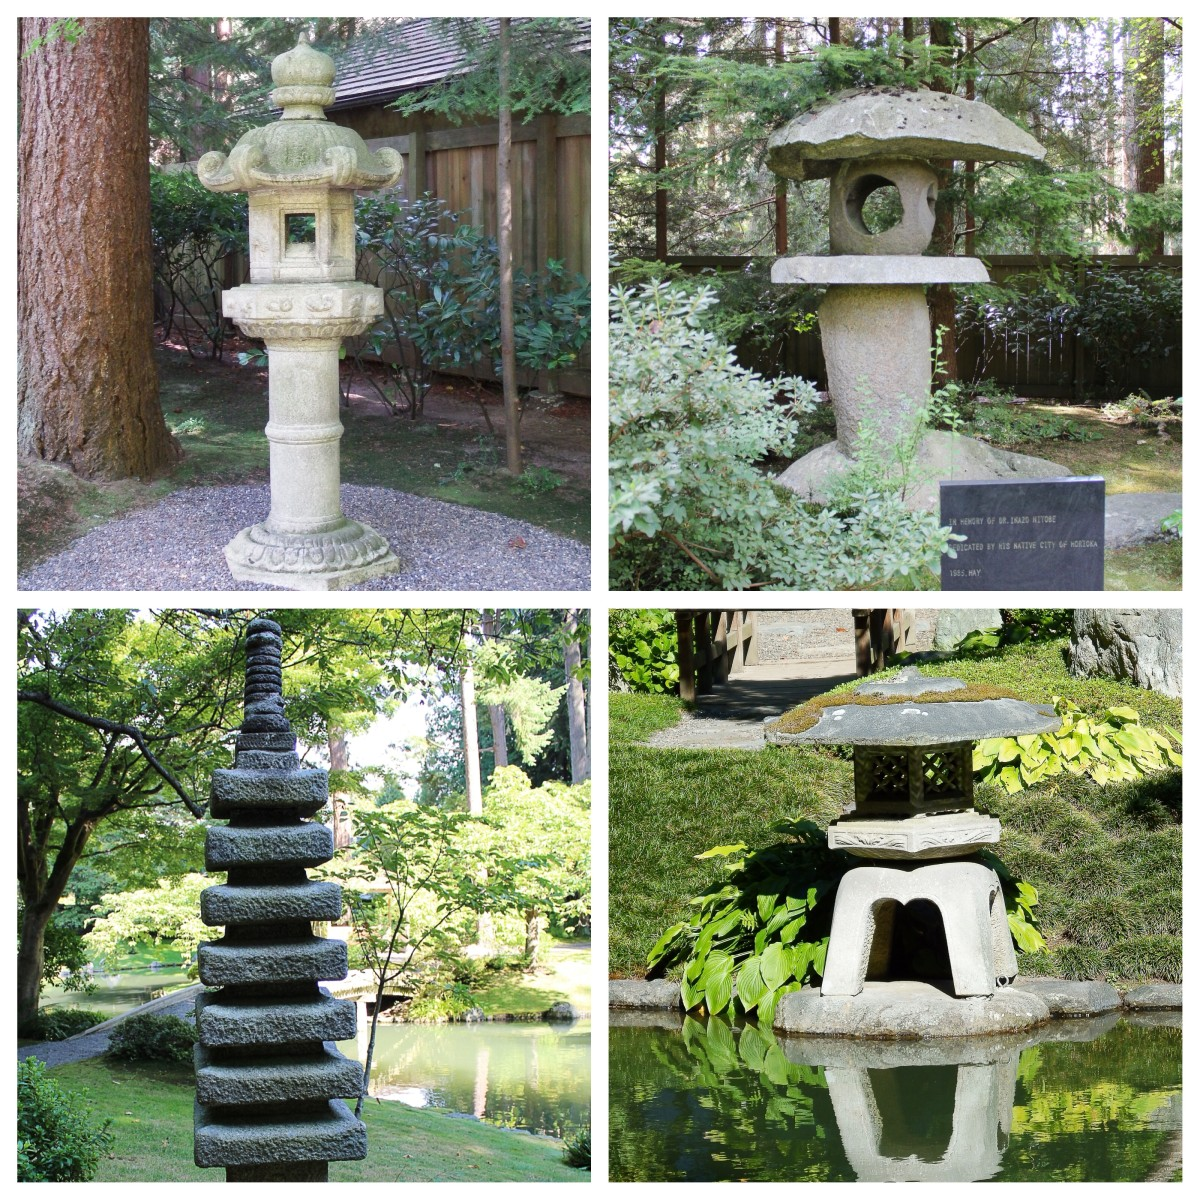 the-nitobe-memorial-garden-in-vancouver-beauty-and-symbolism